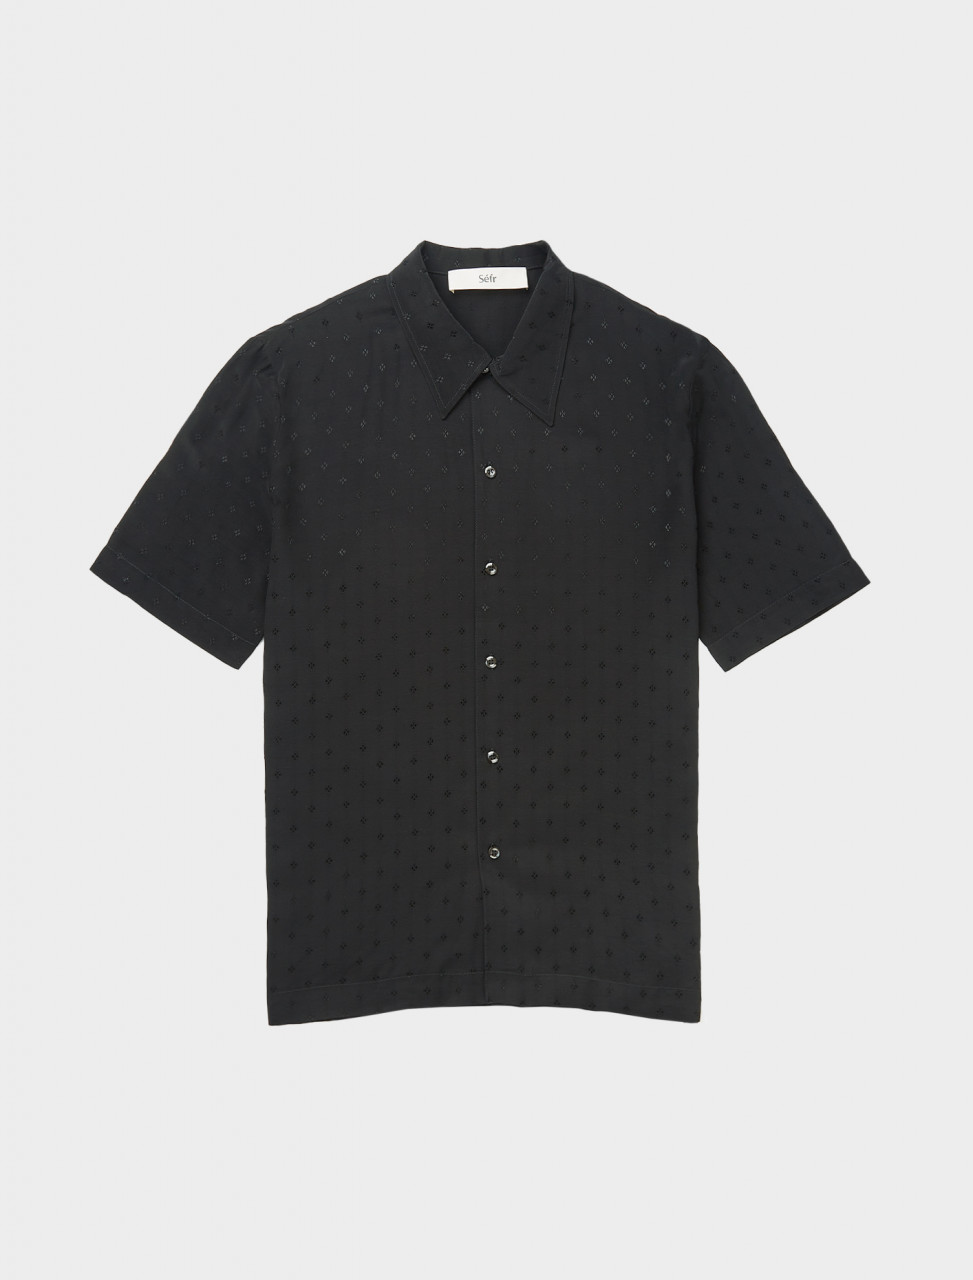 Front view of Séfr Suneham Shirt in Black Print